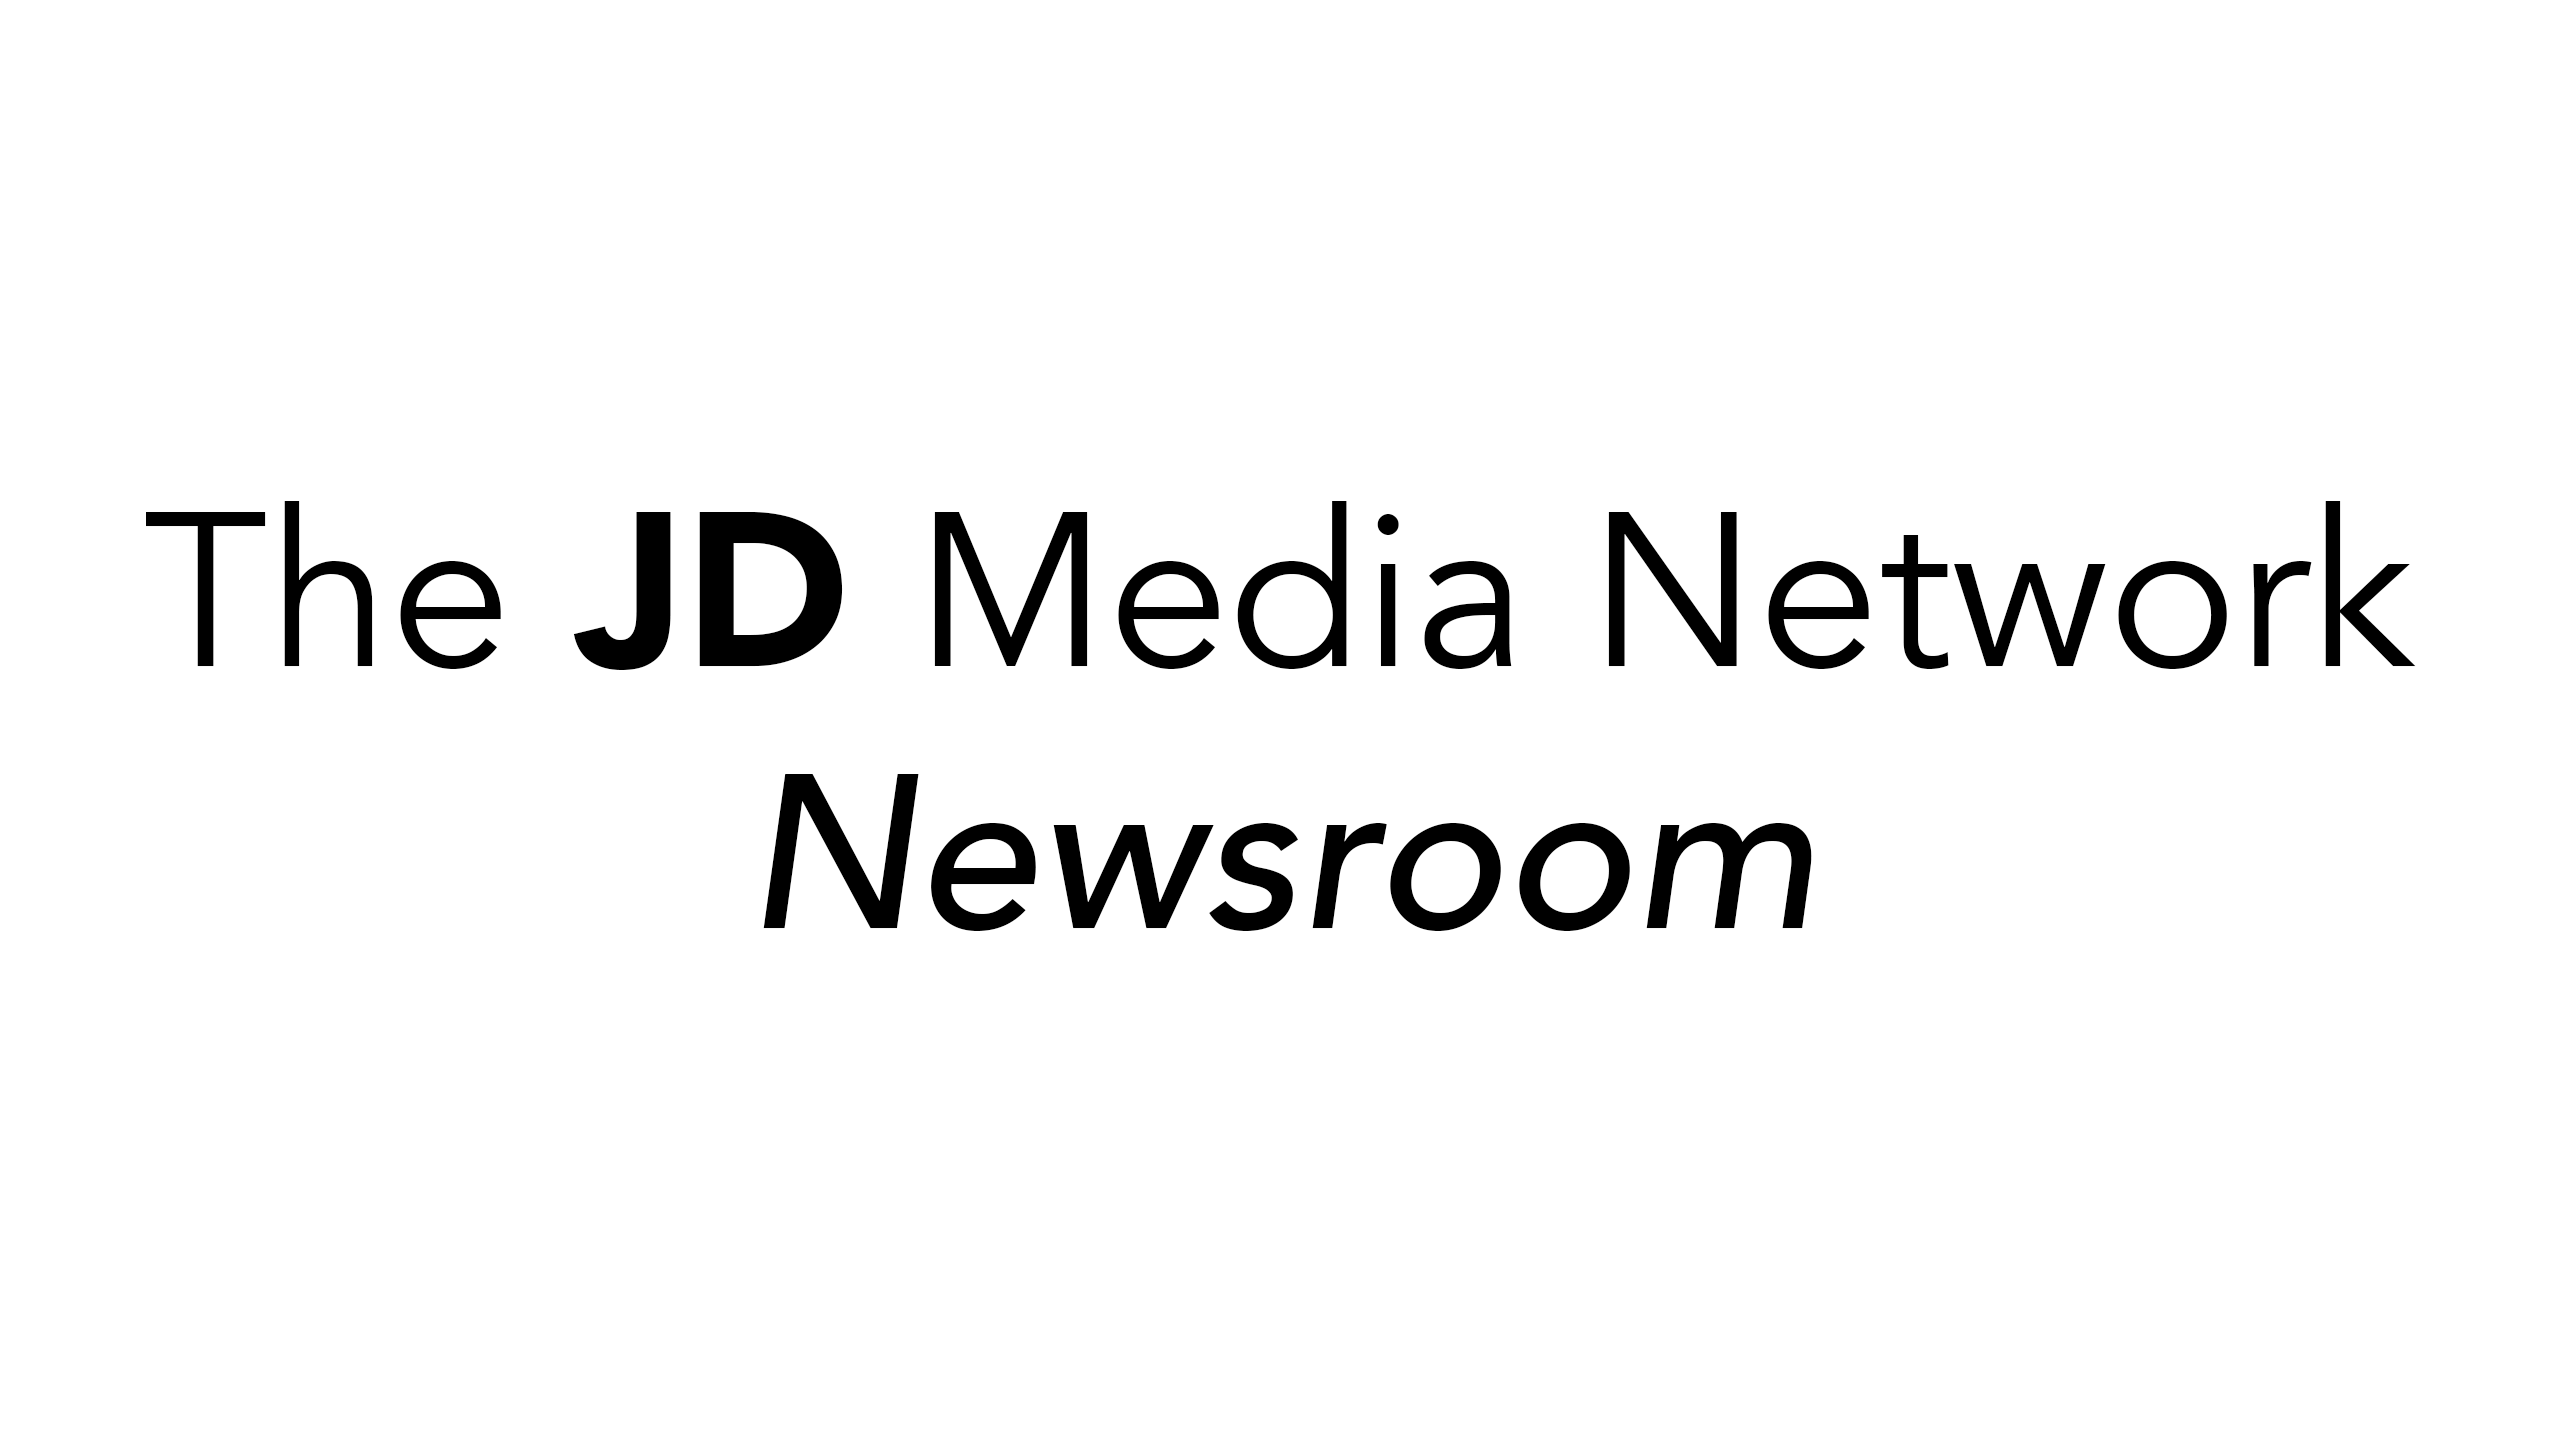 Welcome to The JD Media Network Newsroom!